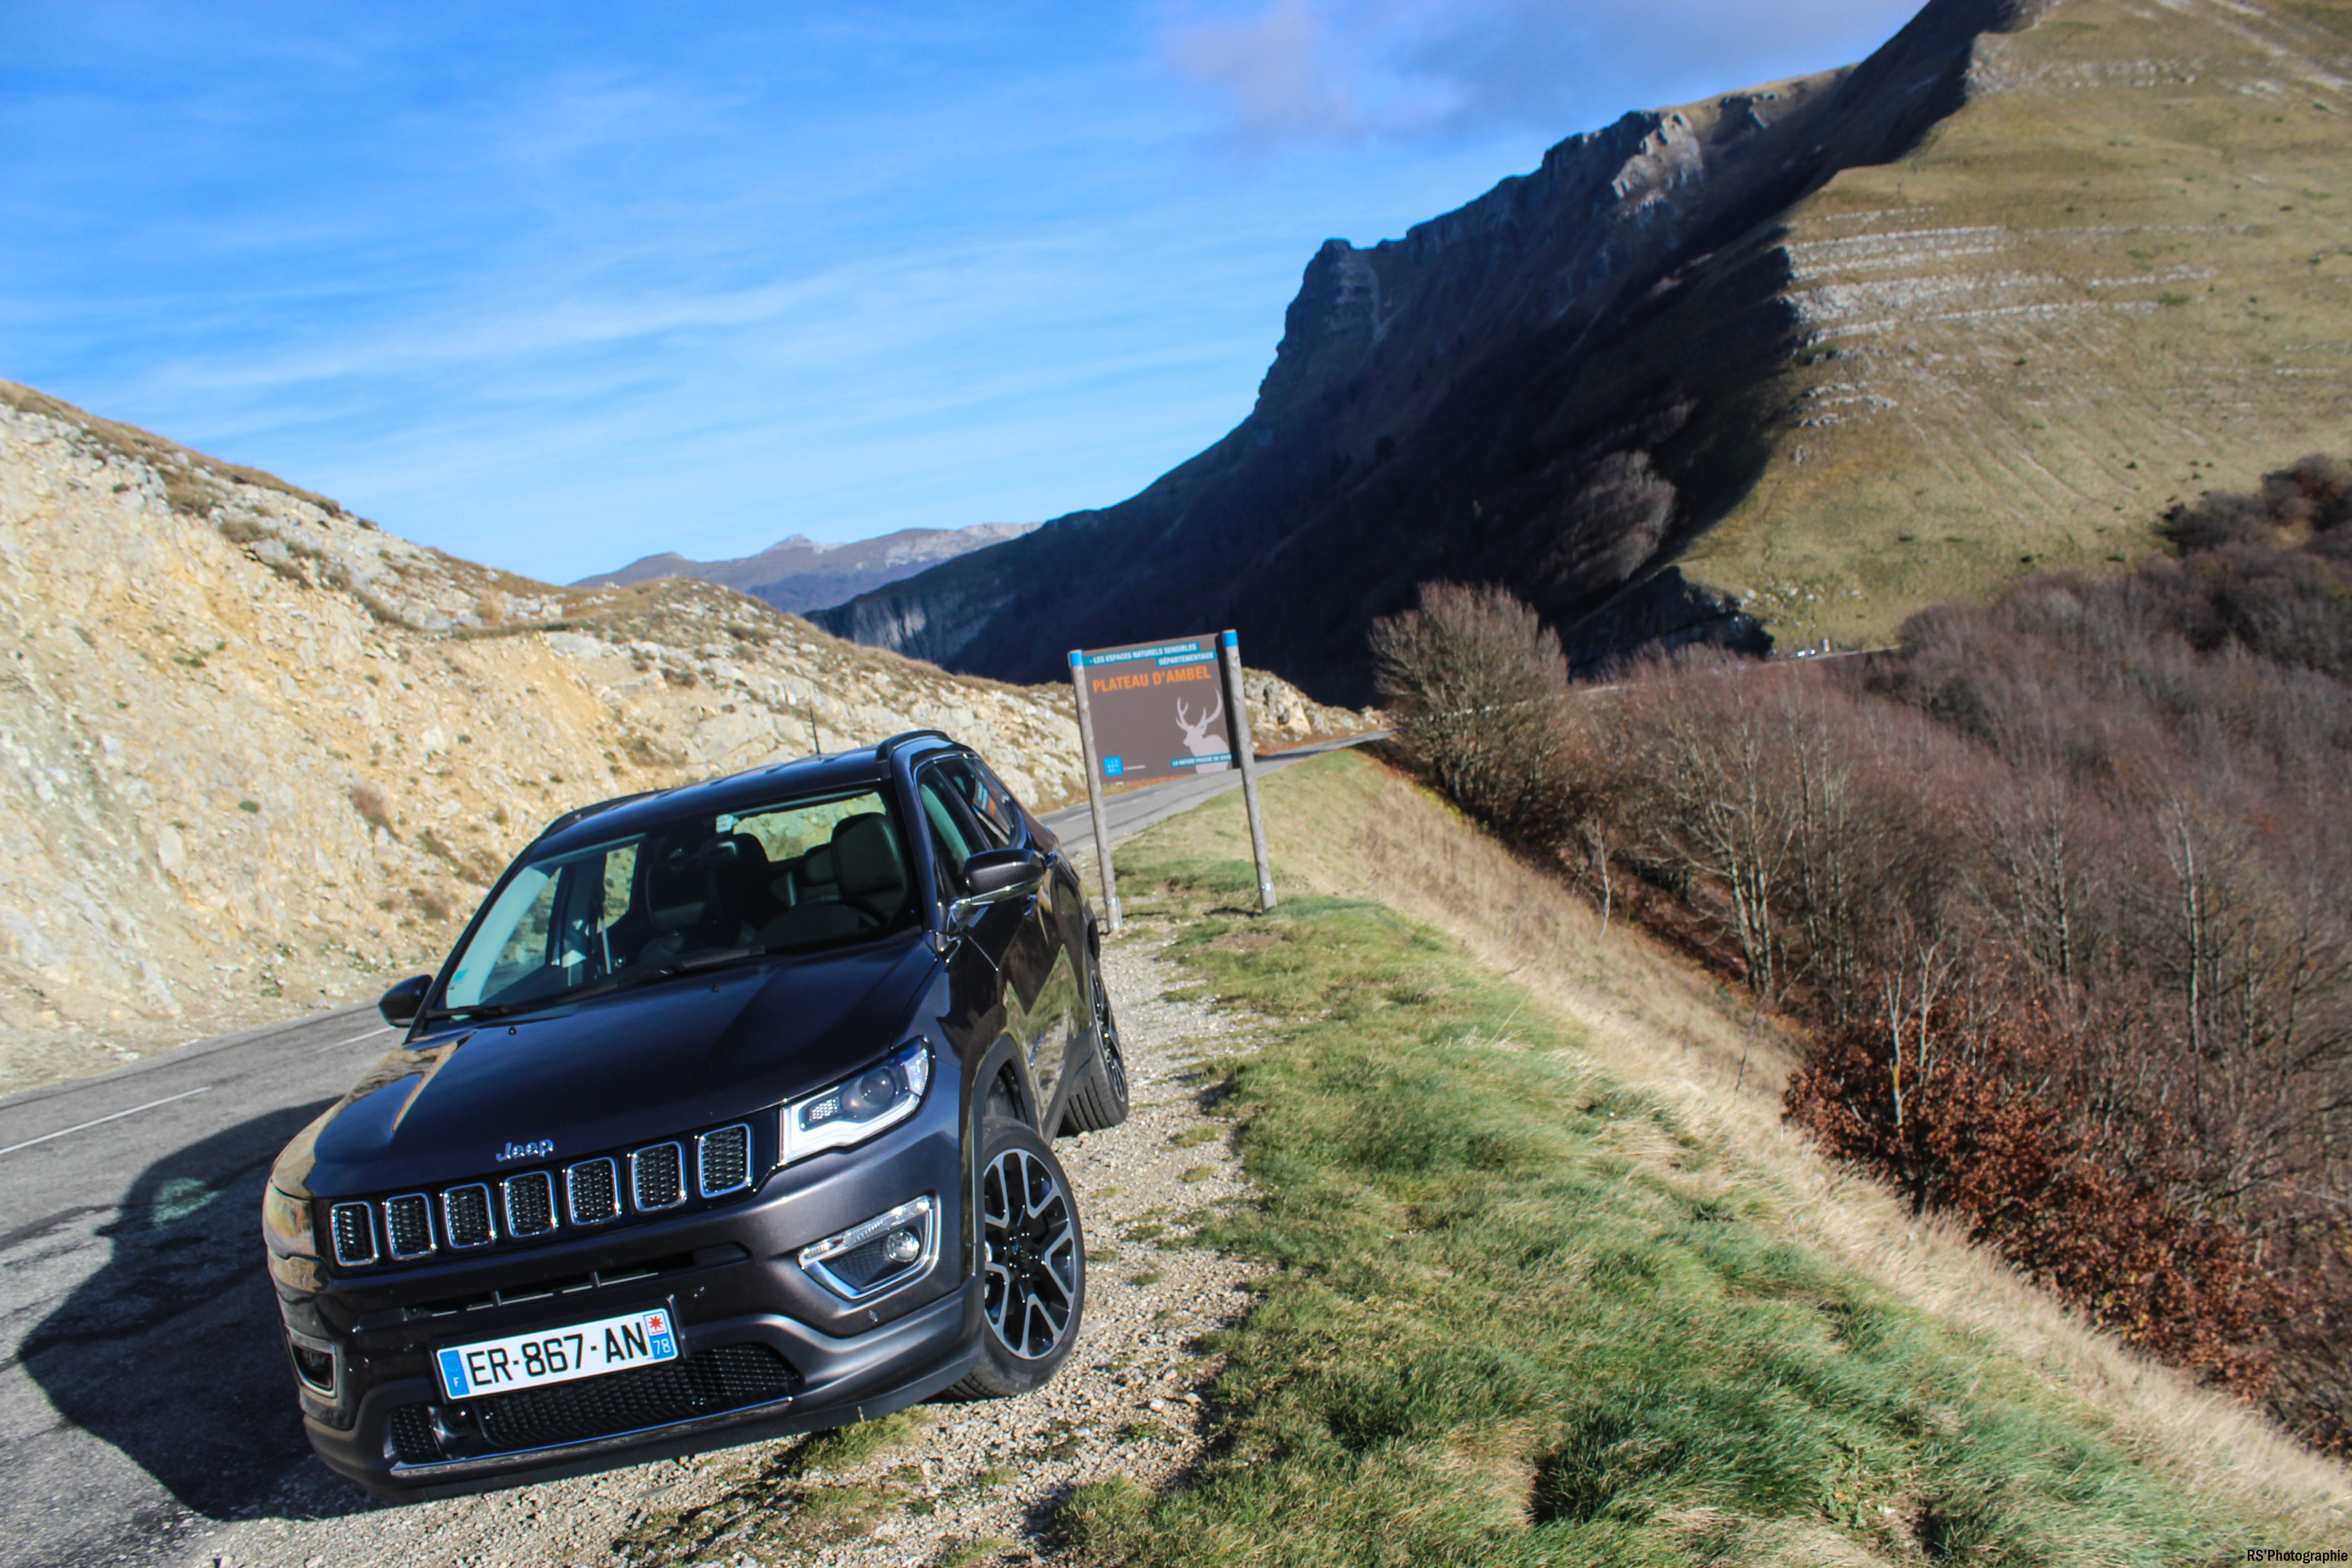 jeepcompass56-jeep-compass-avant-front-Arnaud Demasier-RSPhotographie